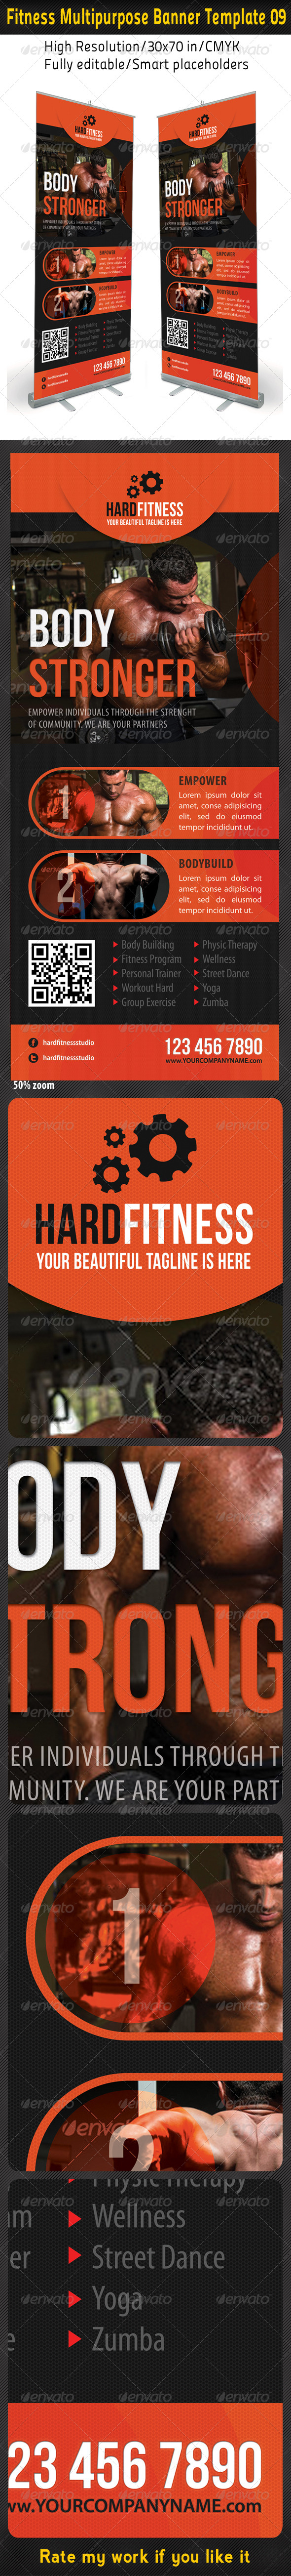 GraphicRiver Fitness Multipurpose Banner Template 10 6585363